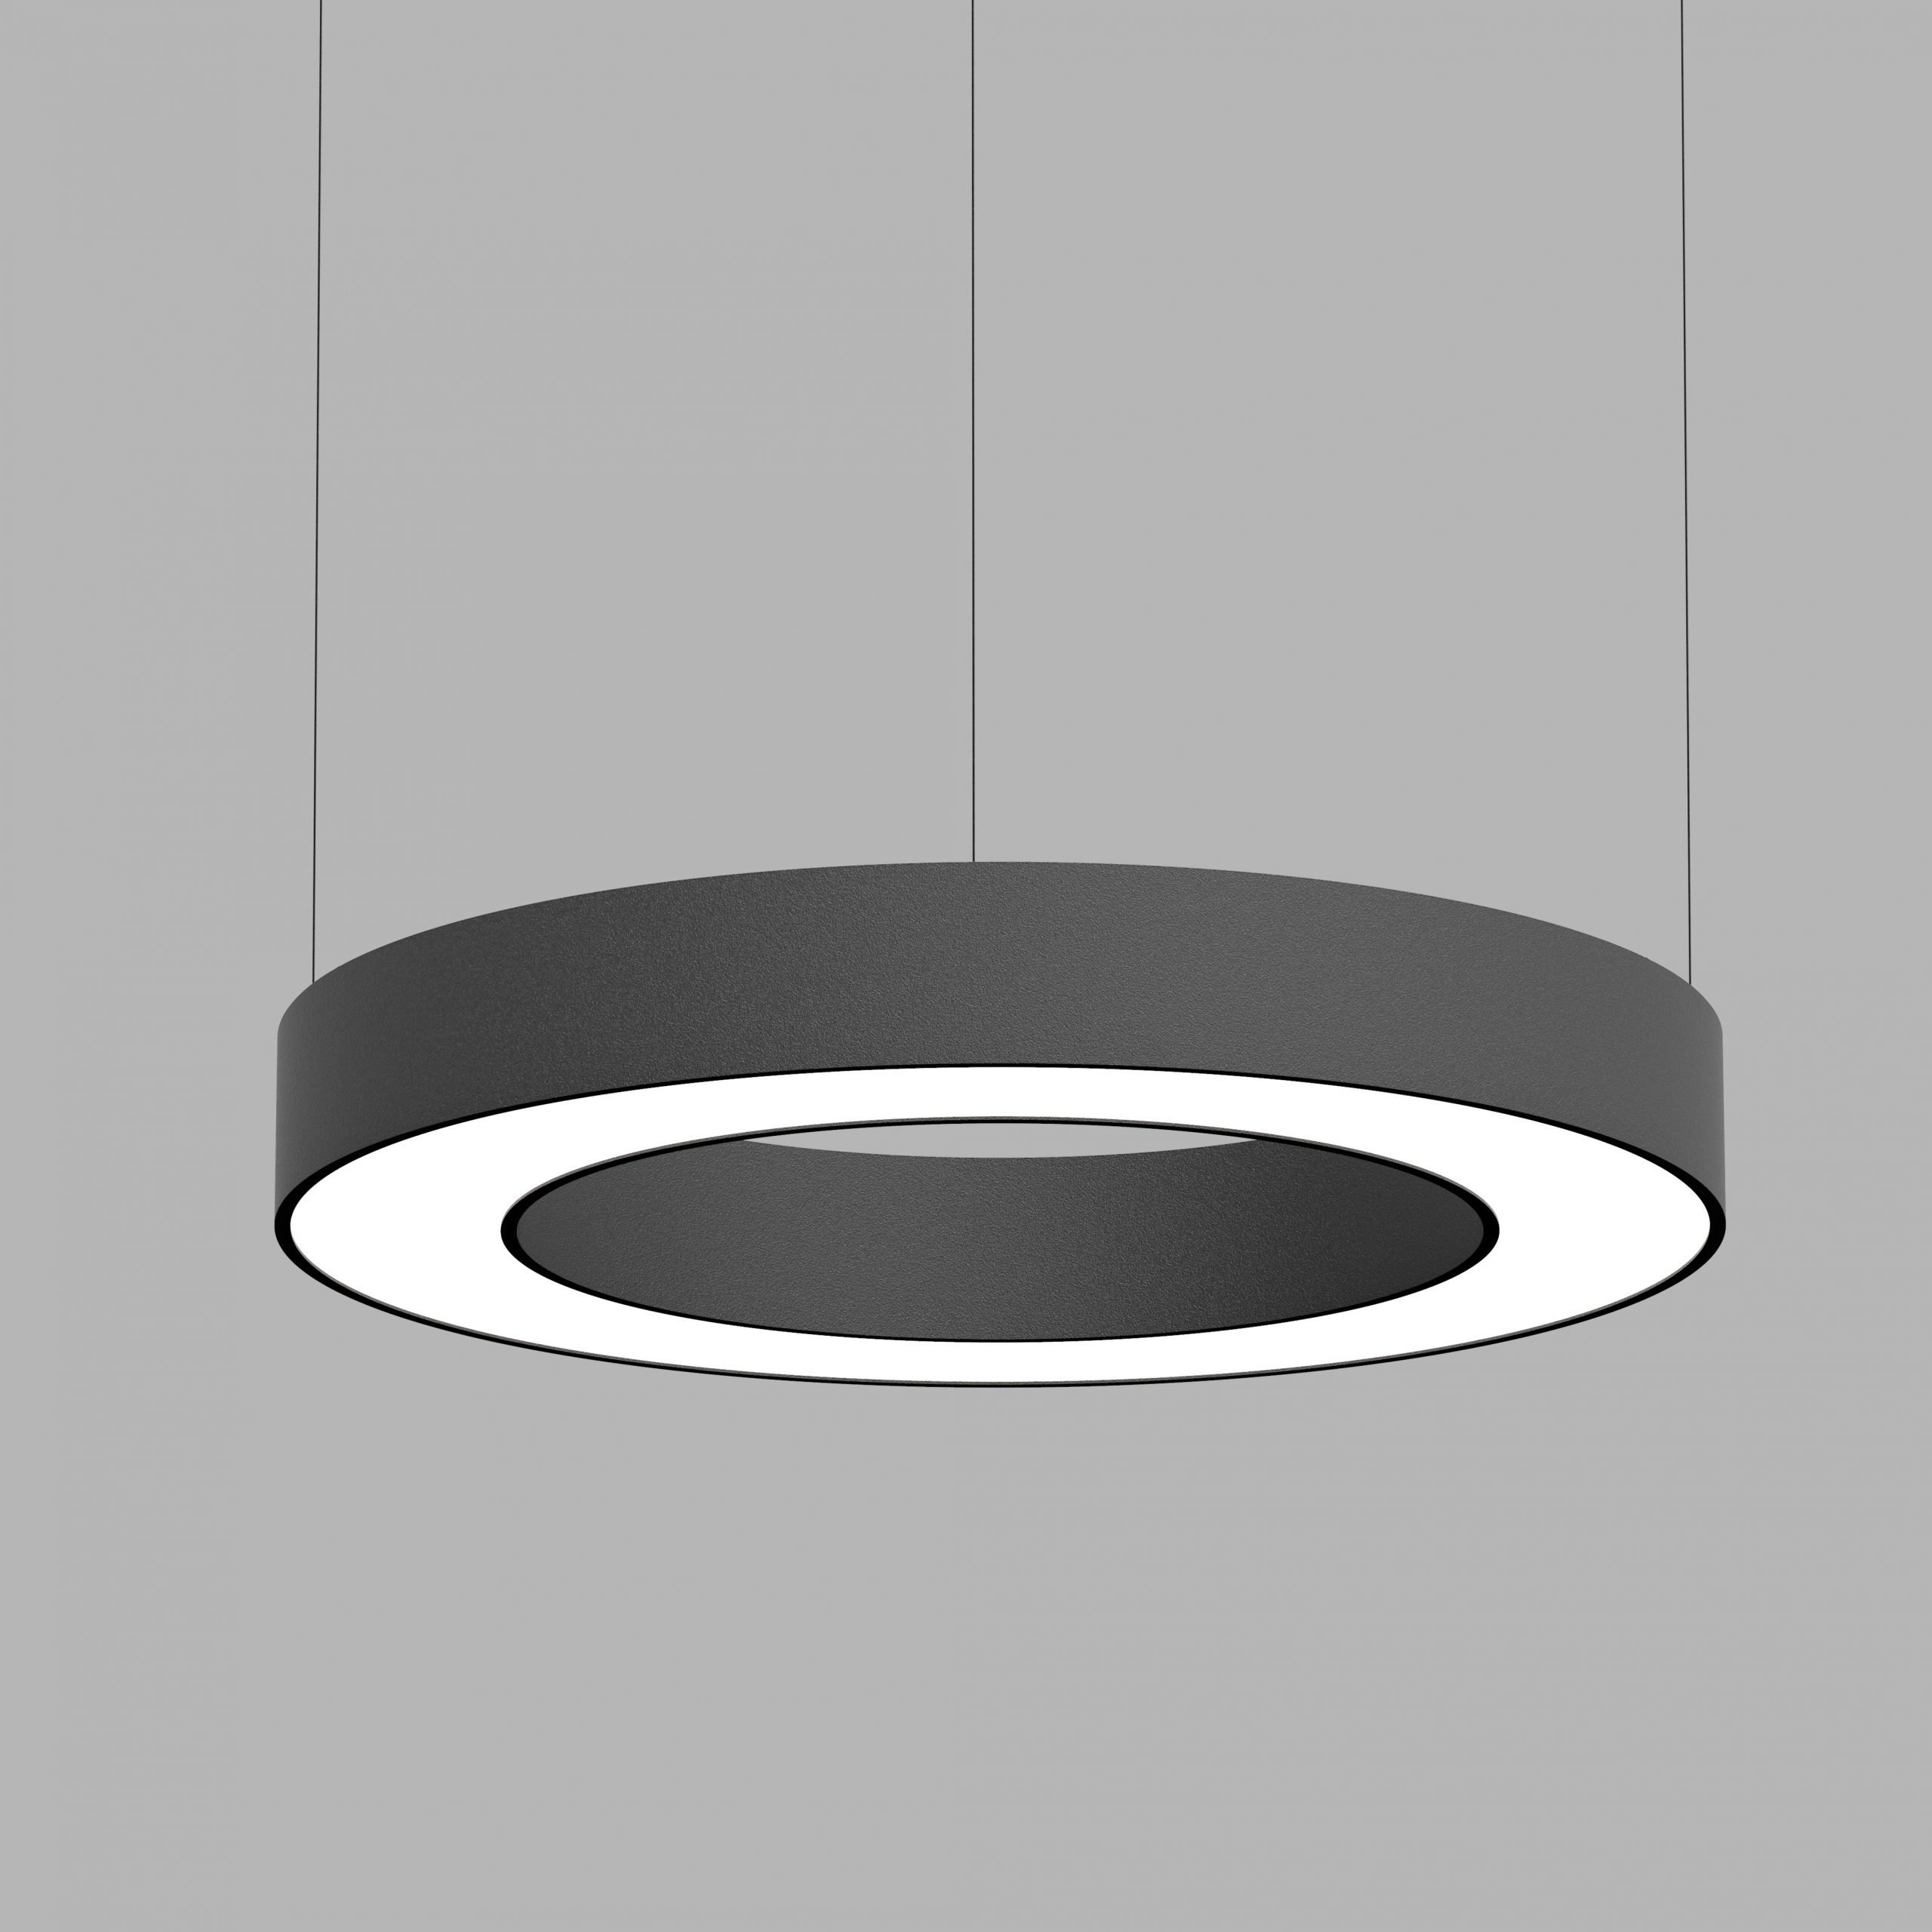 CIRCULAR-RING-SUSPENDED